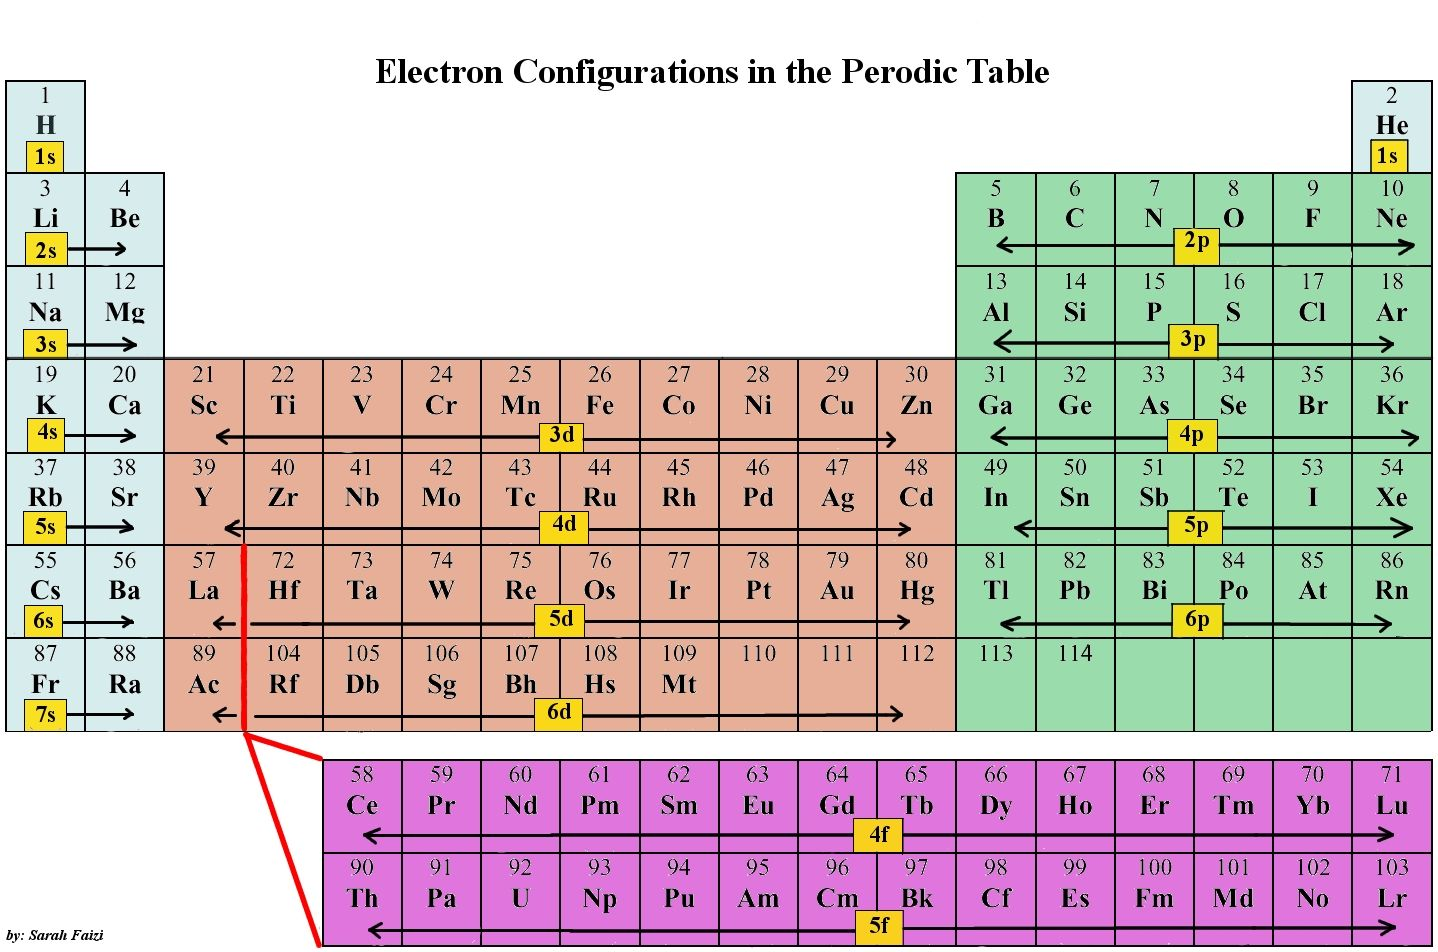 Periodic table of electron configuration chem pinterest periodic table of electron configuration chem pinterest periodic table chemistry and organic chemistry gamestrikefo Choice Image